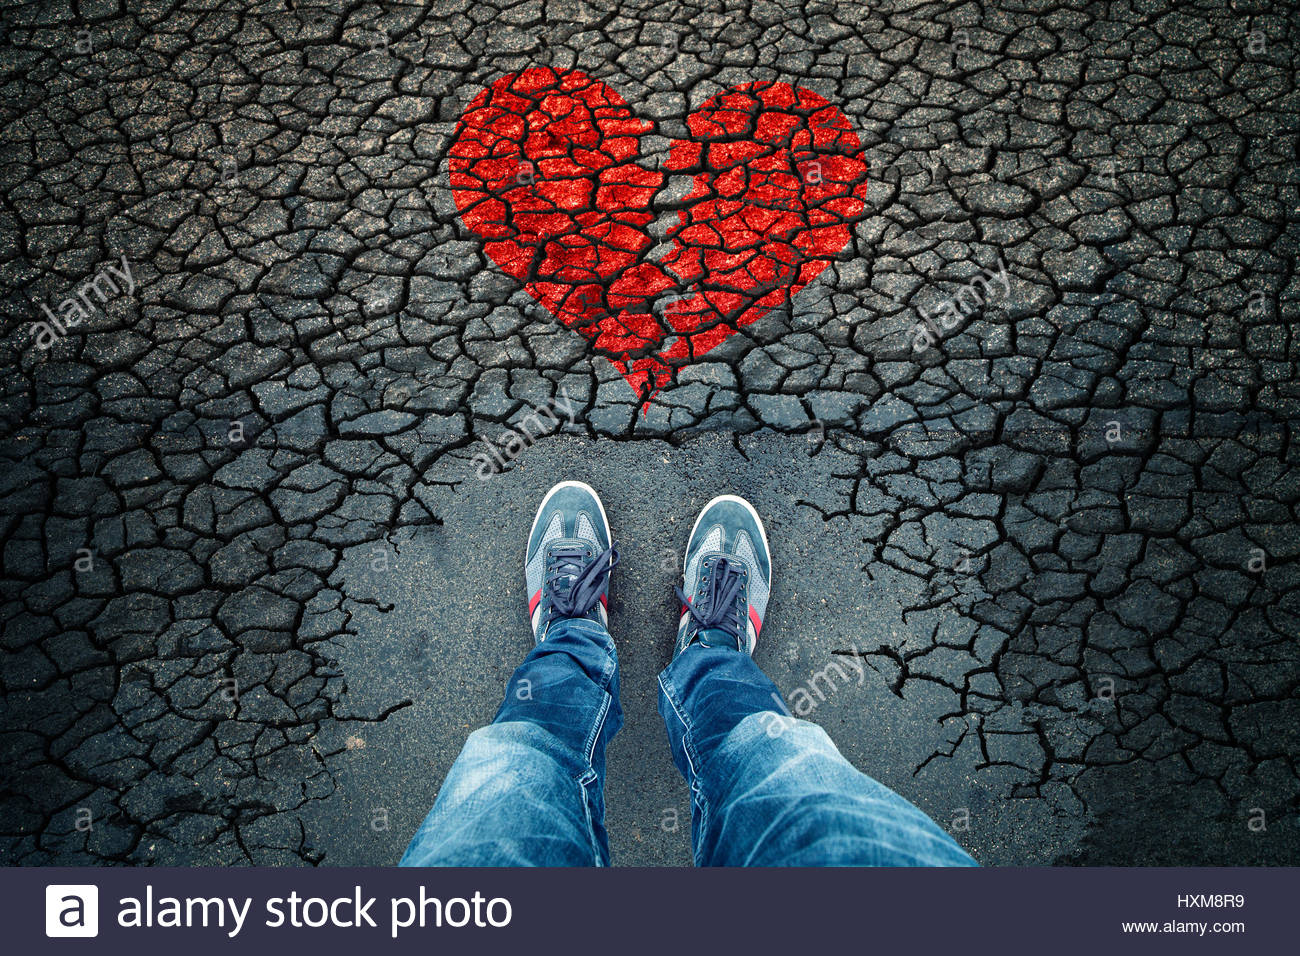 Lonely man standing on cracked asphalt floor with illustrated cracked broken heart symbol. Point of view perspective - Stock Image